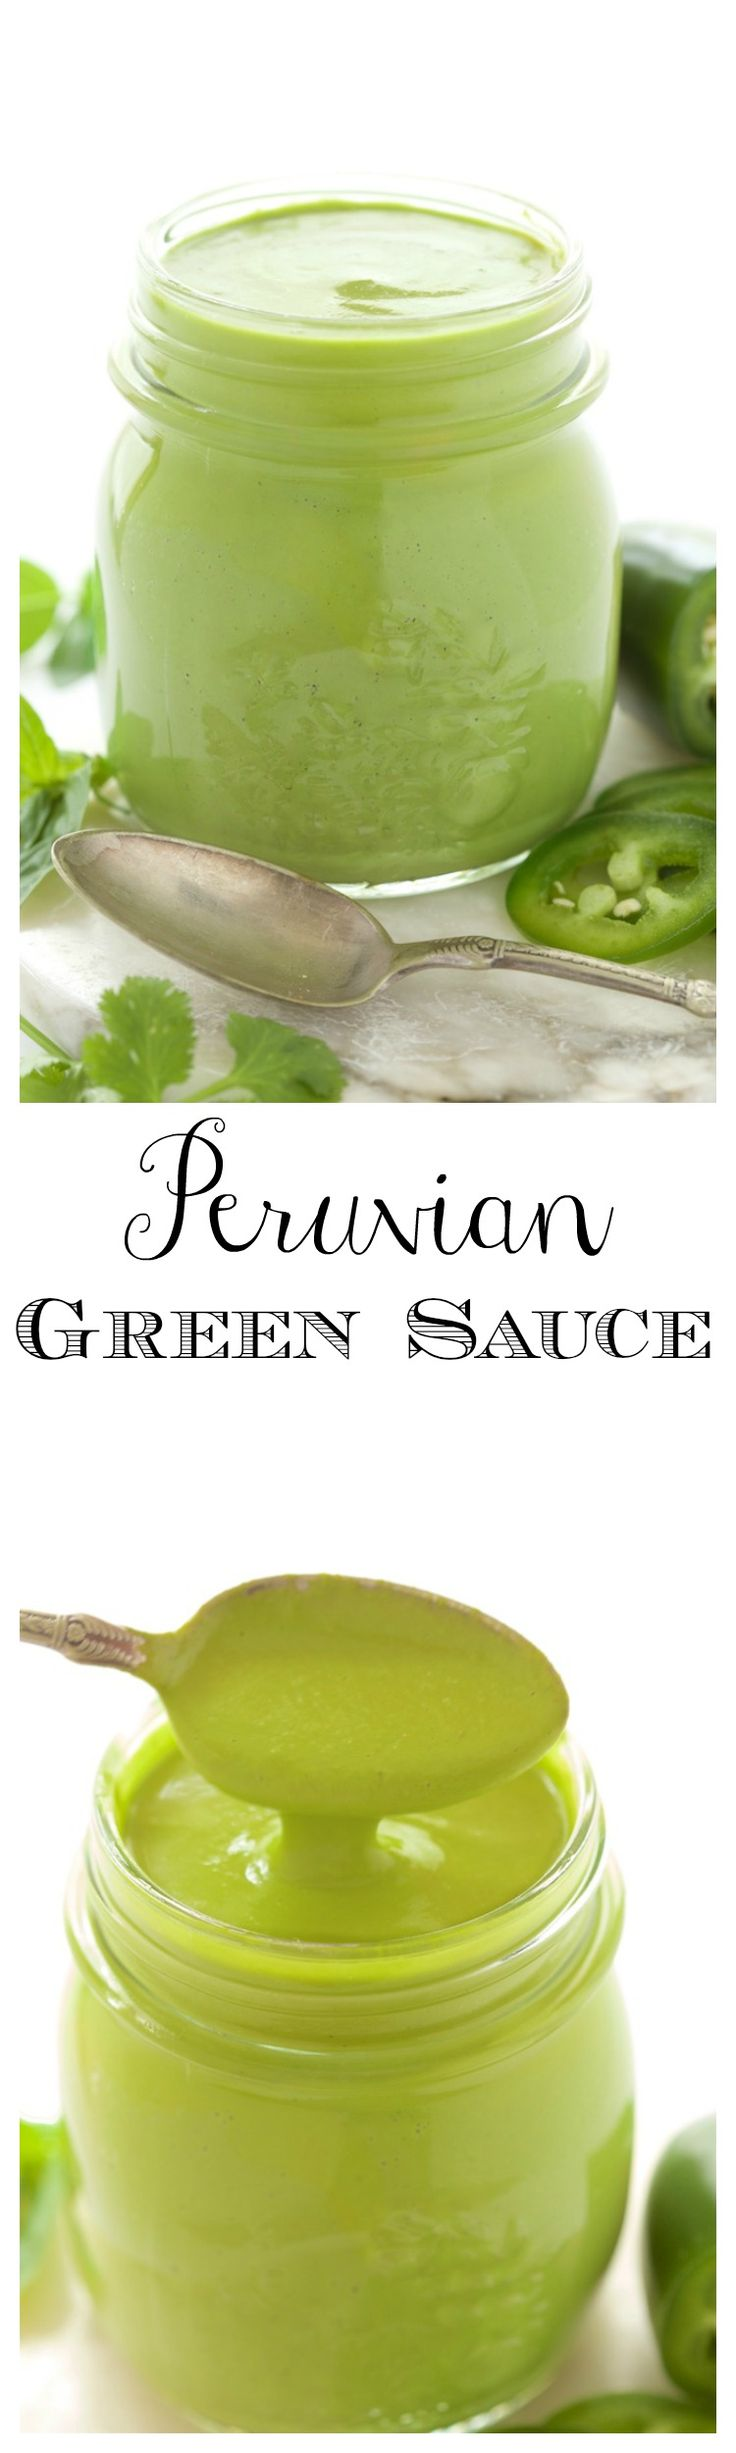 Peruvian Green Sauce - a fresh, vibrant sauce that's fabulous drizzled on anything from the grill. t's also great with potatoes, rice, drizzled on black beans as a dipping sauce for shrimp....